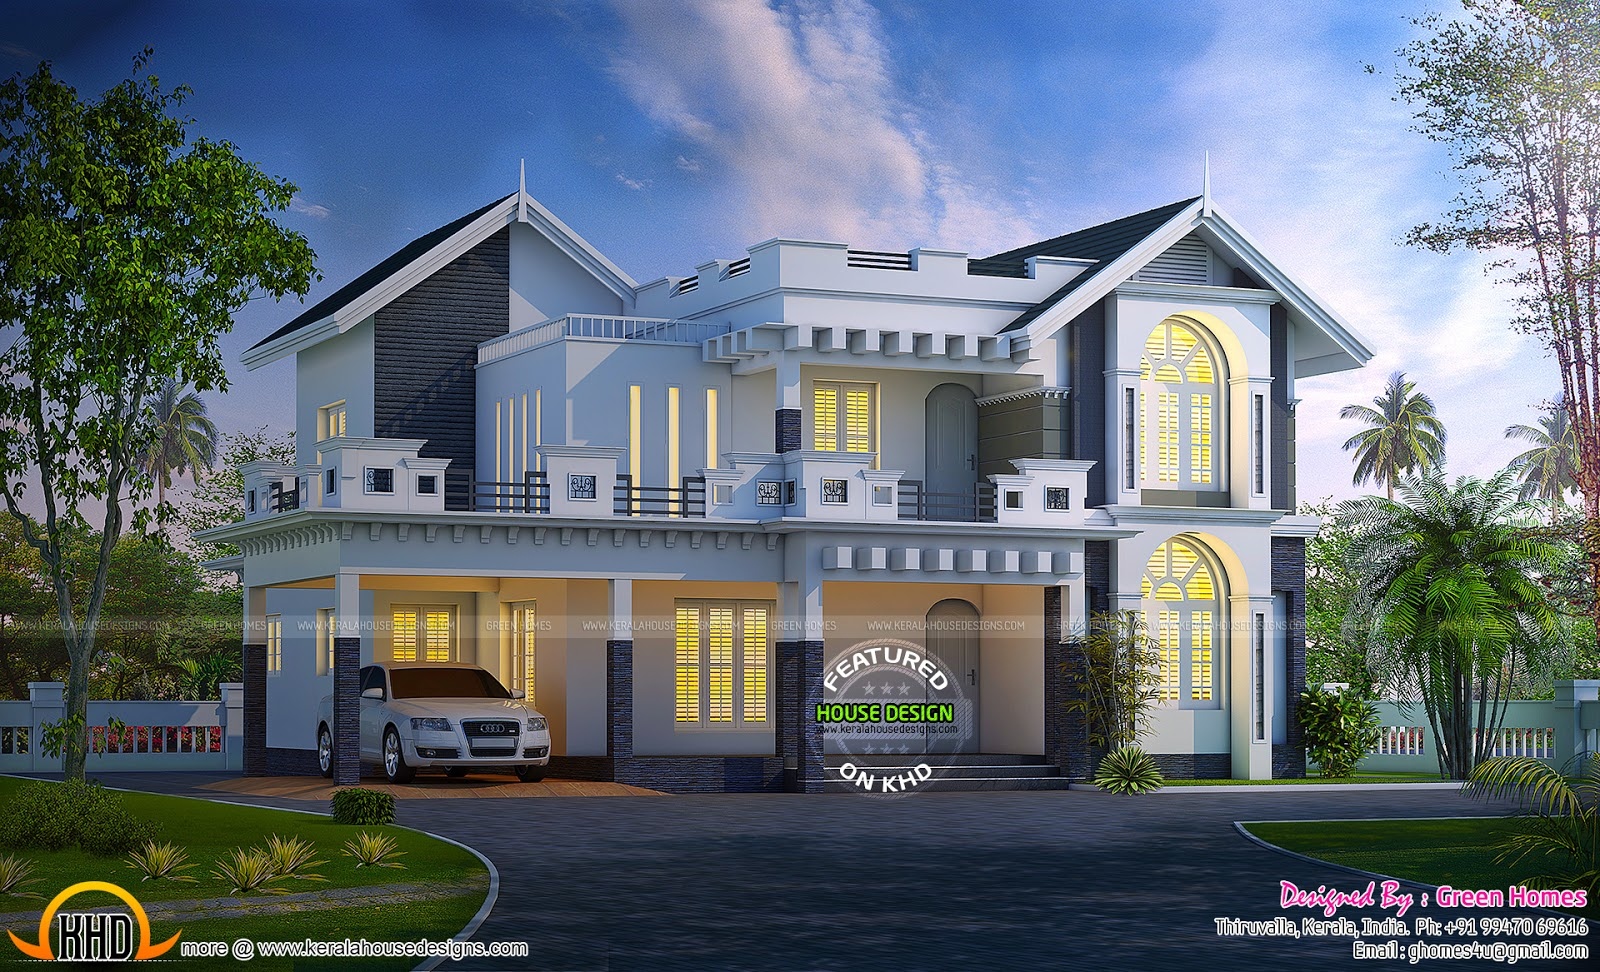 New kerala house plans for june 2015 keralahousedesigns for Latest design house plan